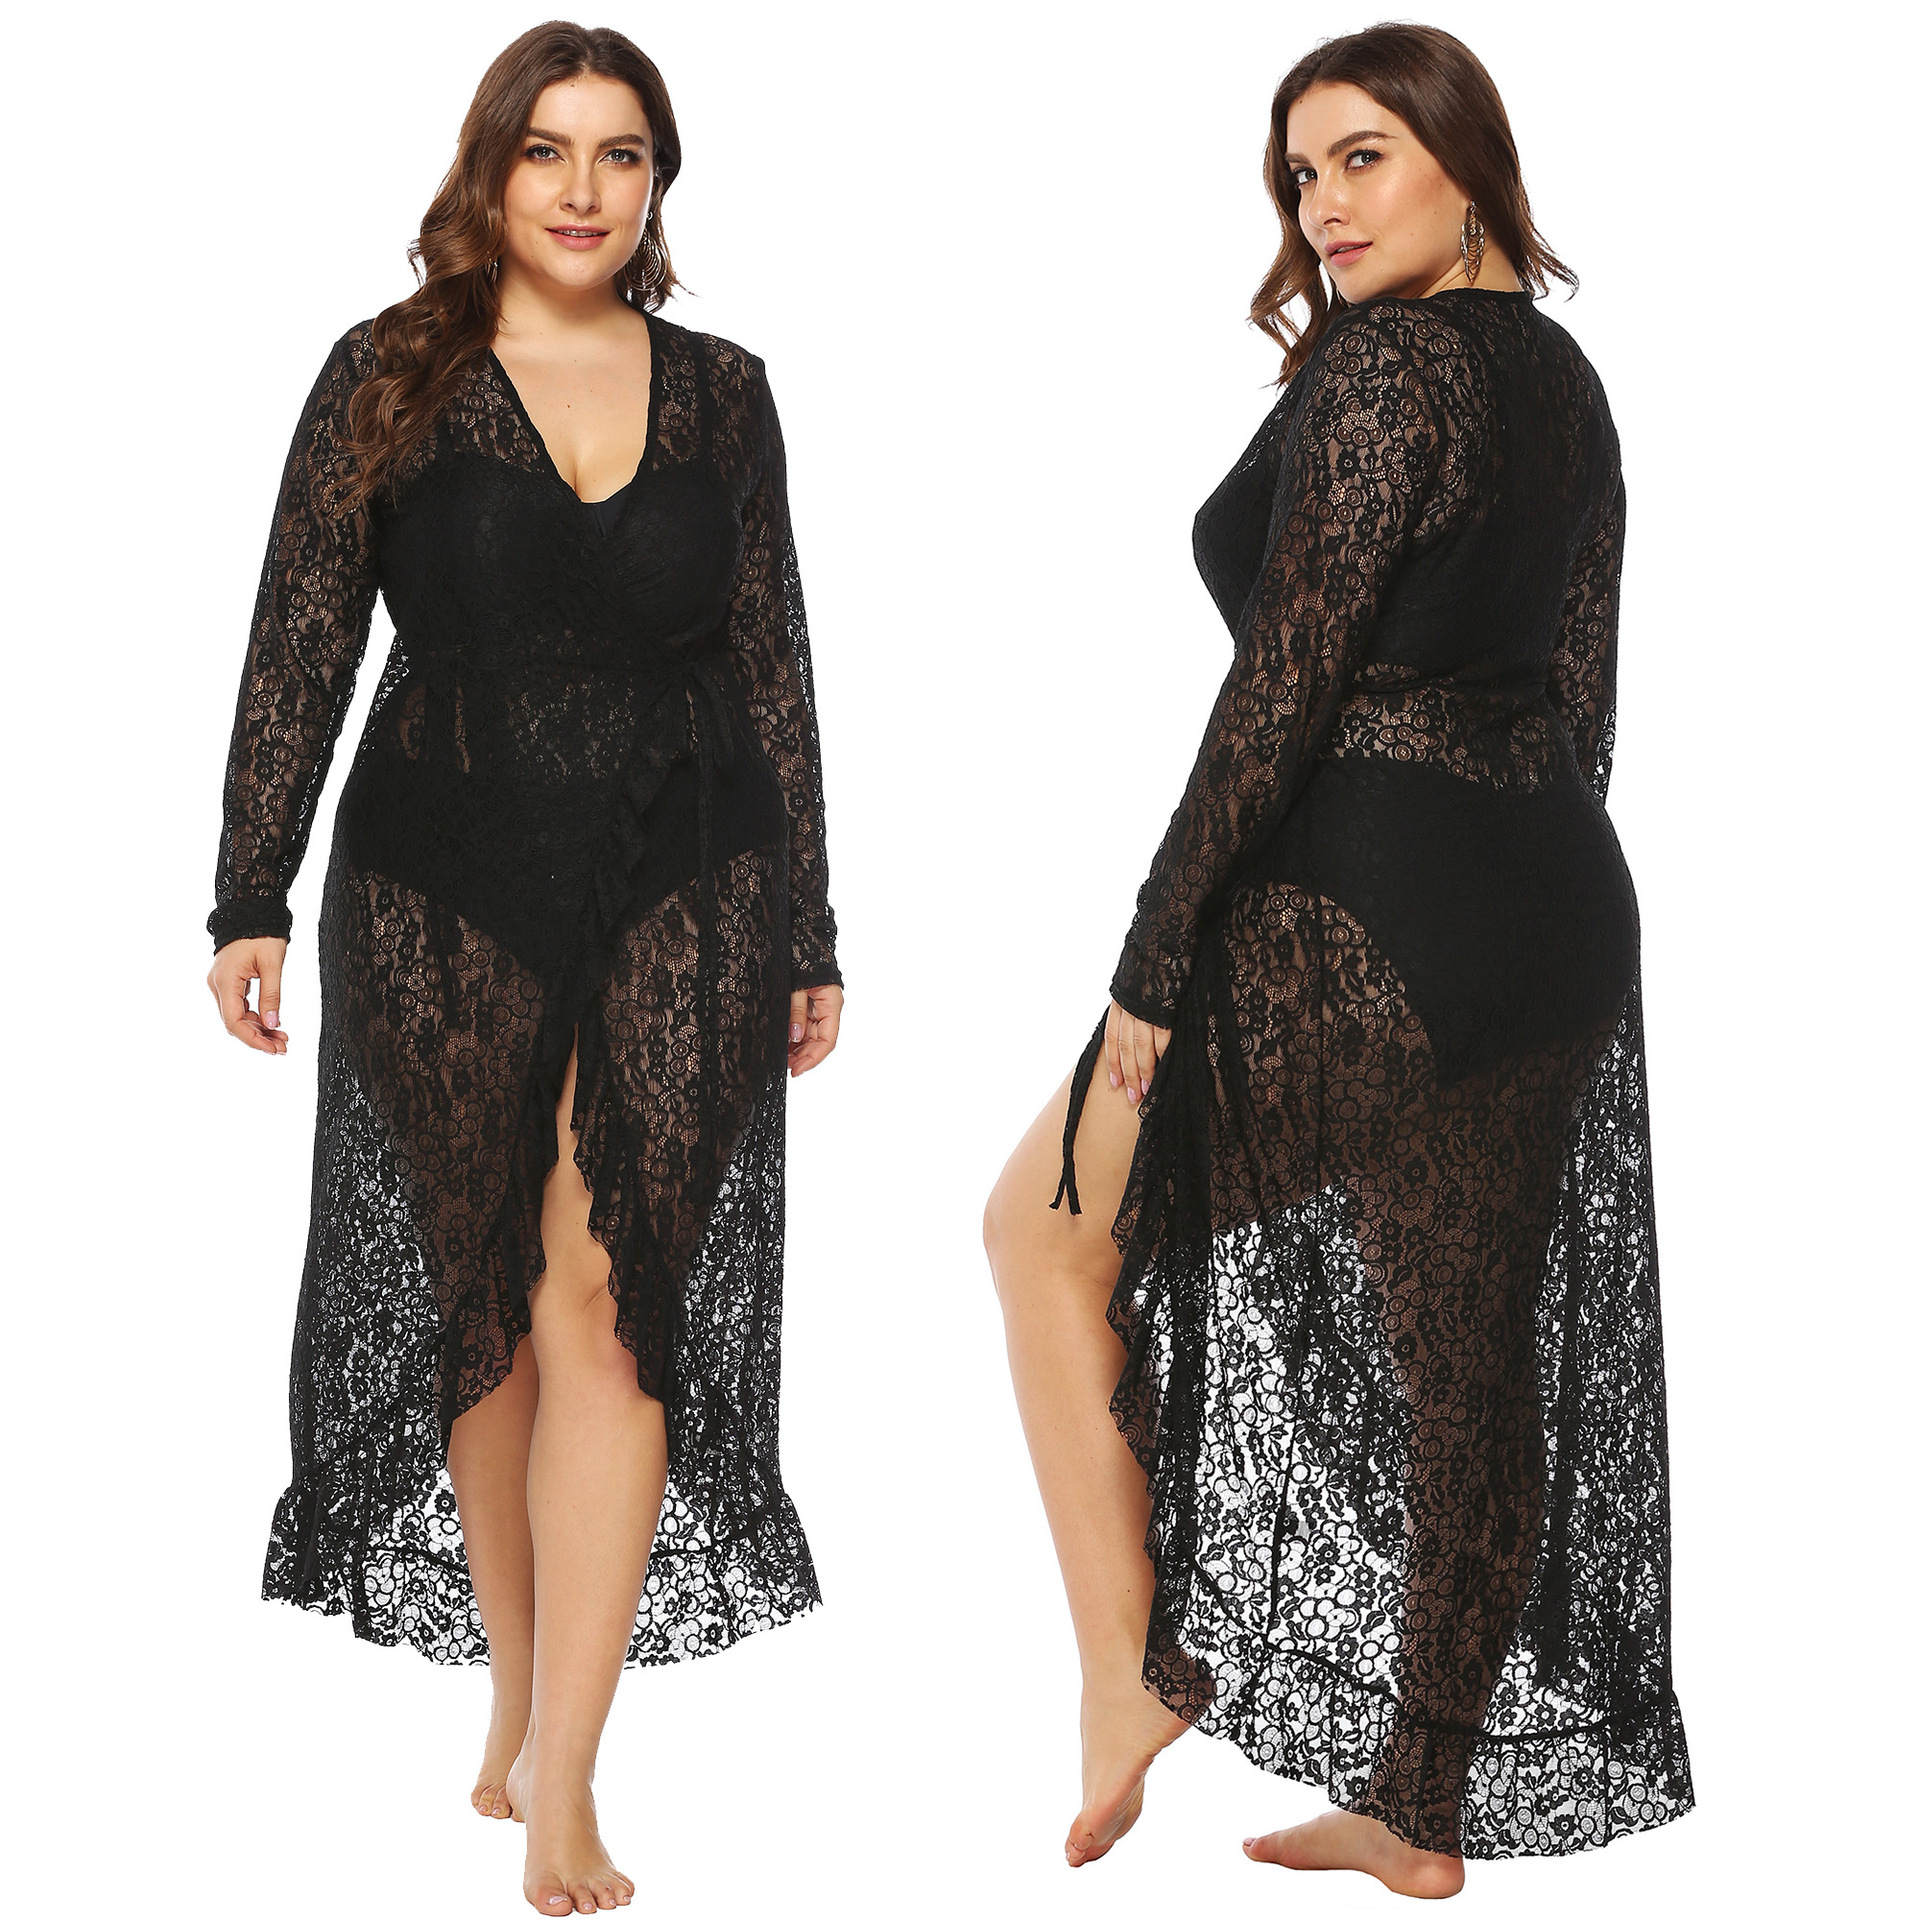 Amazon Cross Border WOMEN'S Dress Sexy Perspective Lace Deep V Irregular Flounced Bandage Cloth Beach One-piece Dress 1728